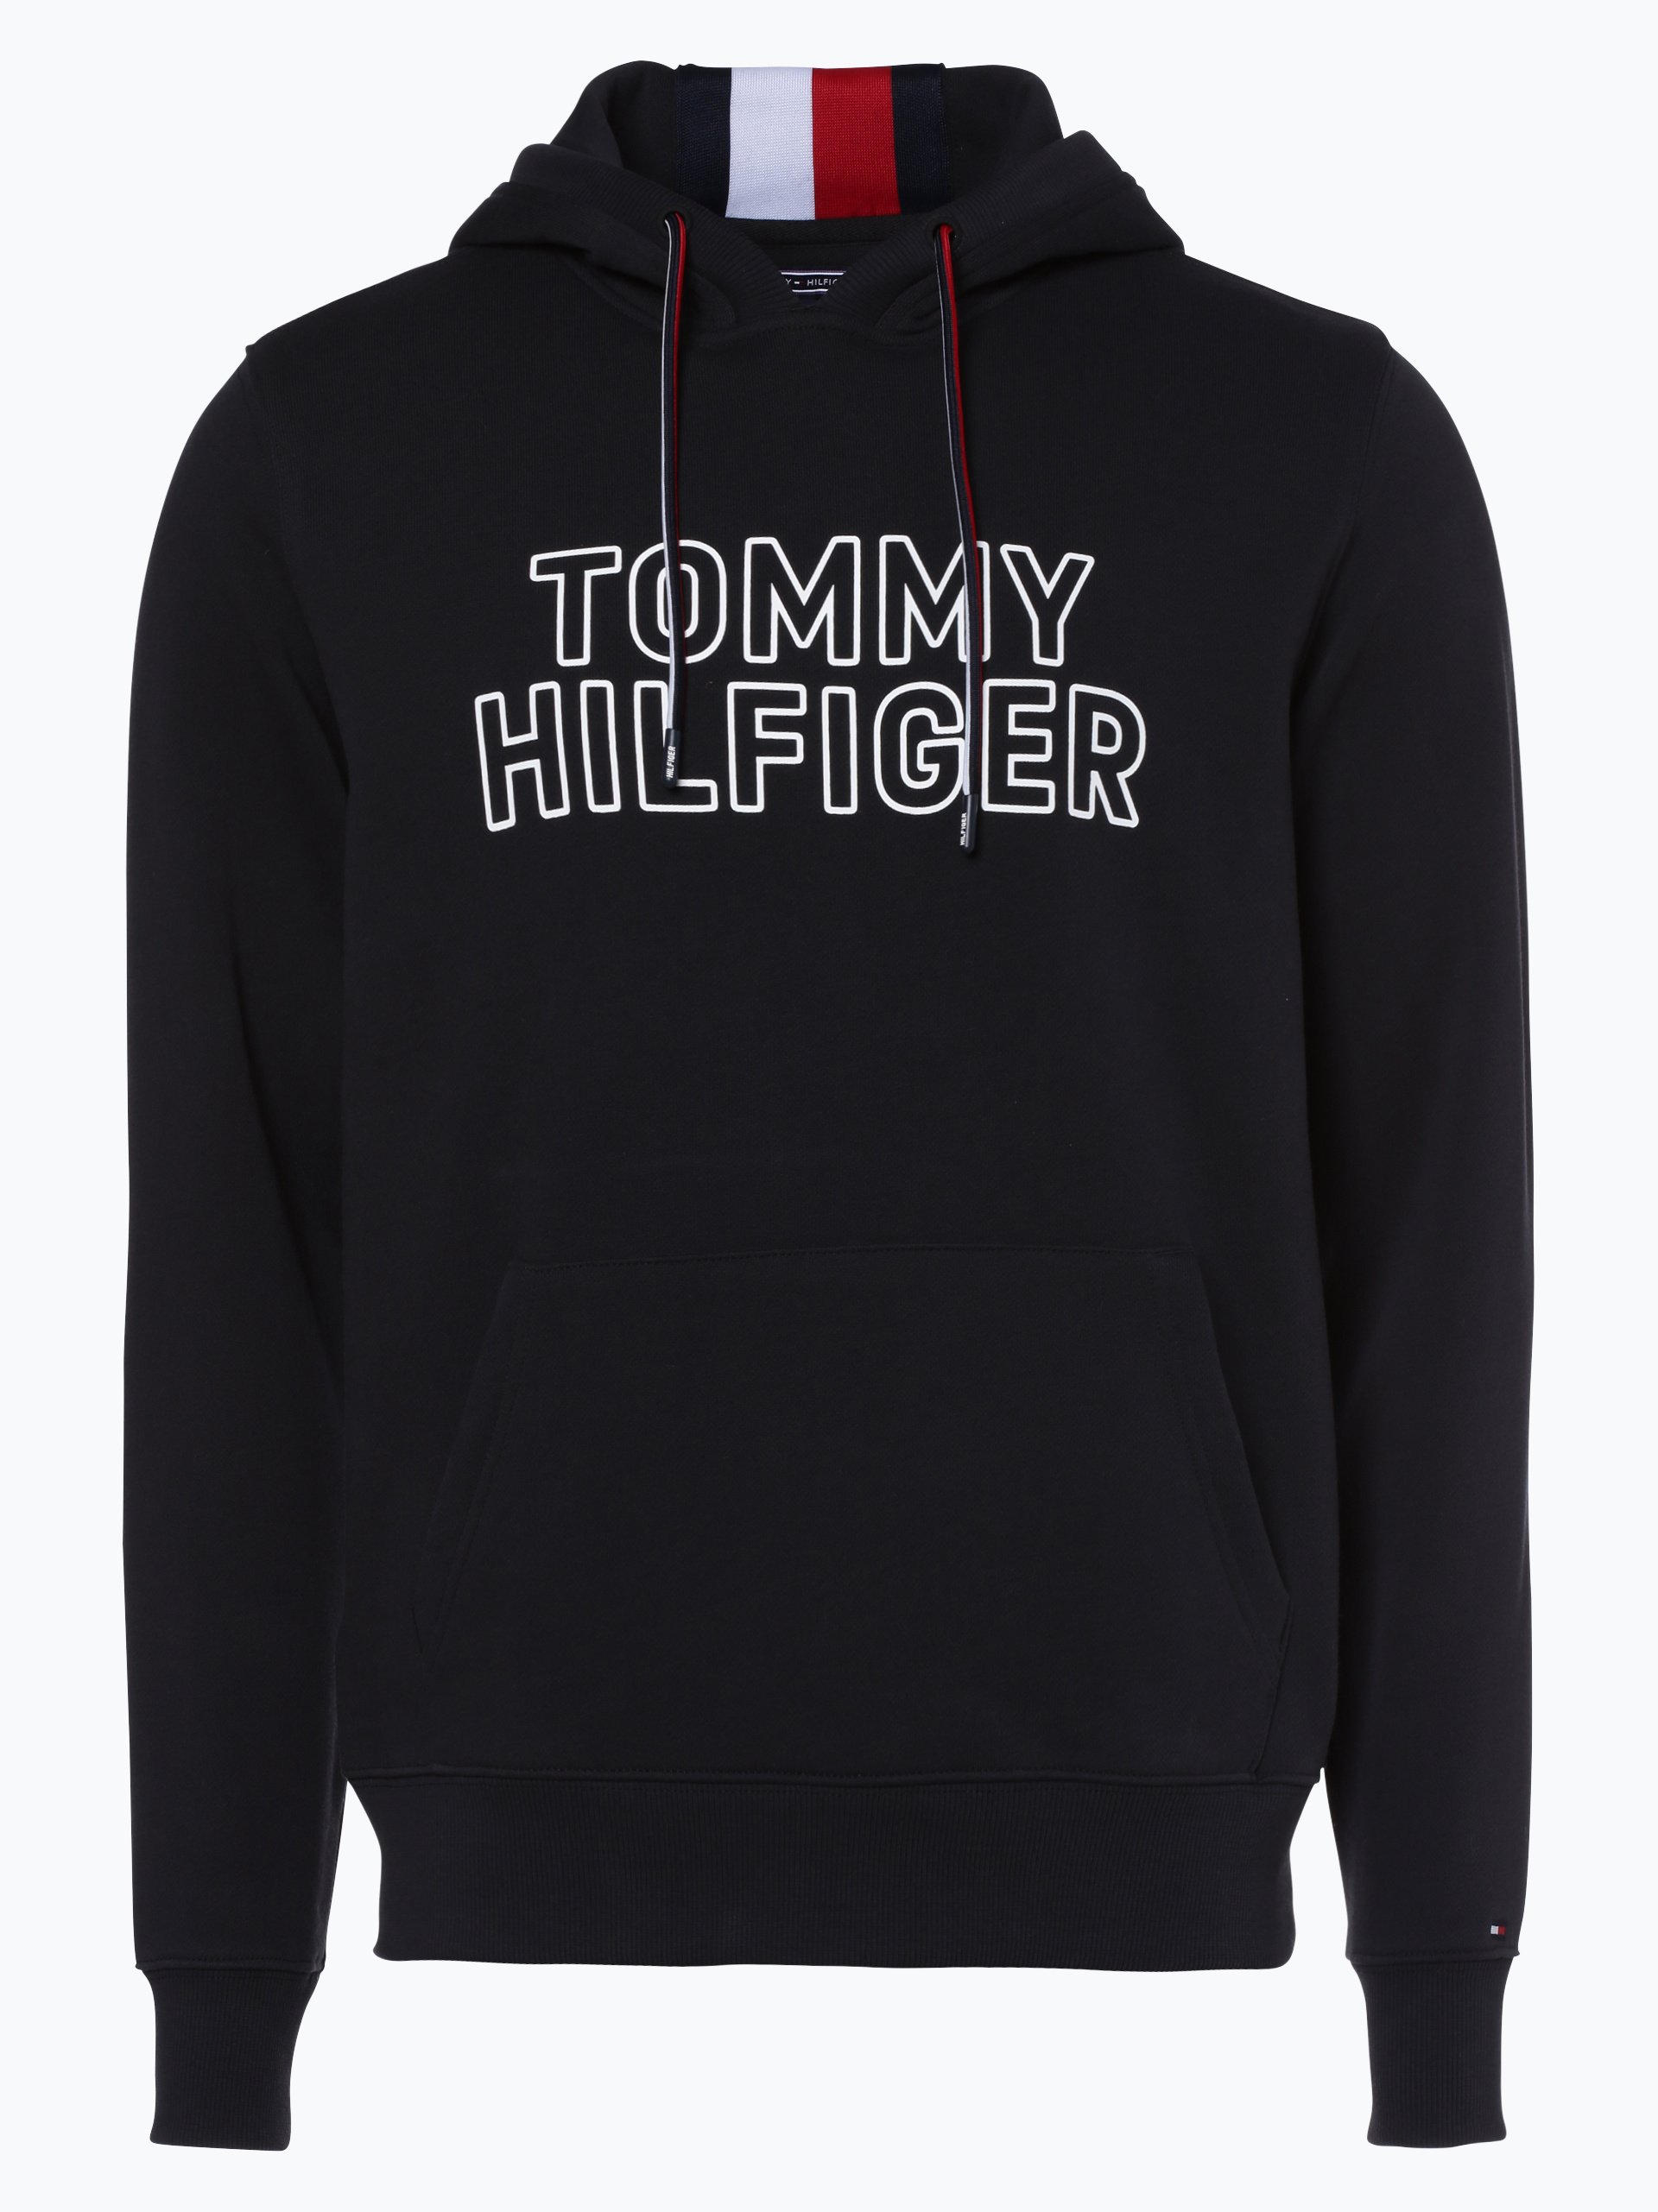 tommy hilfiger herren sweatshirt schwarz bedruckt online. Black Bedroom Furniture Sets. Home Design Ideas